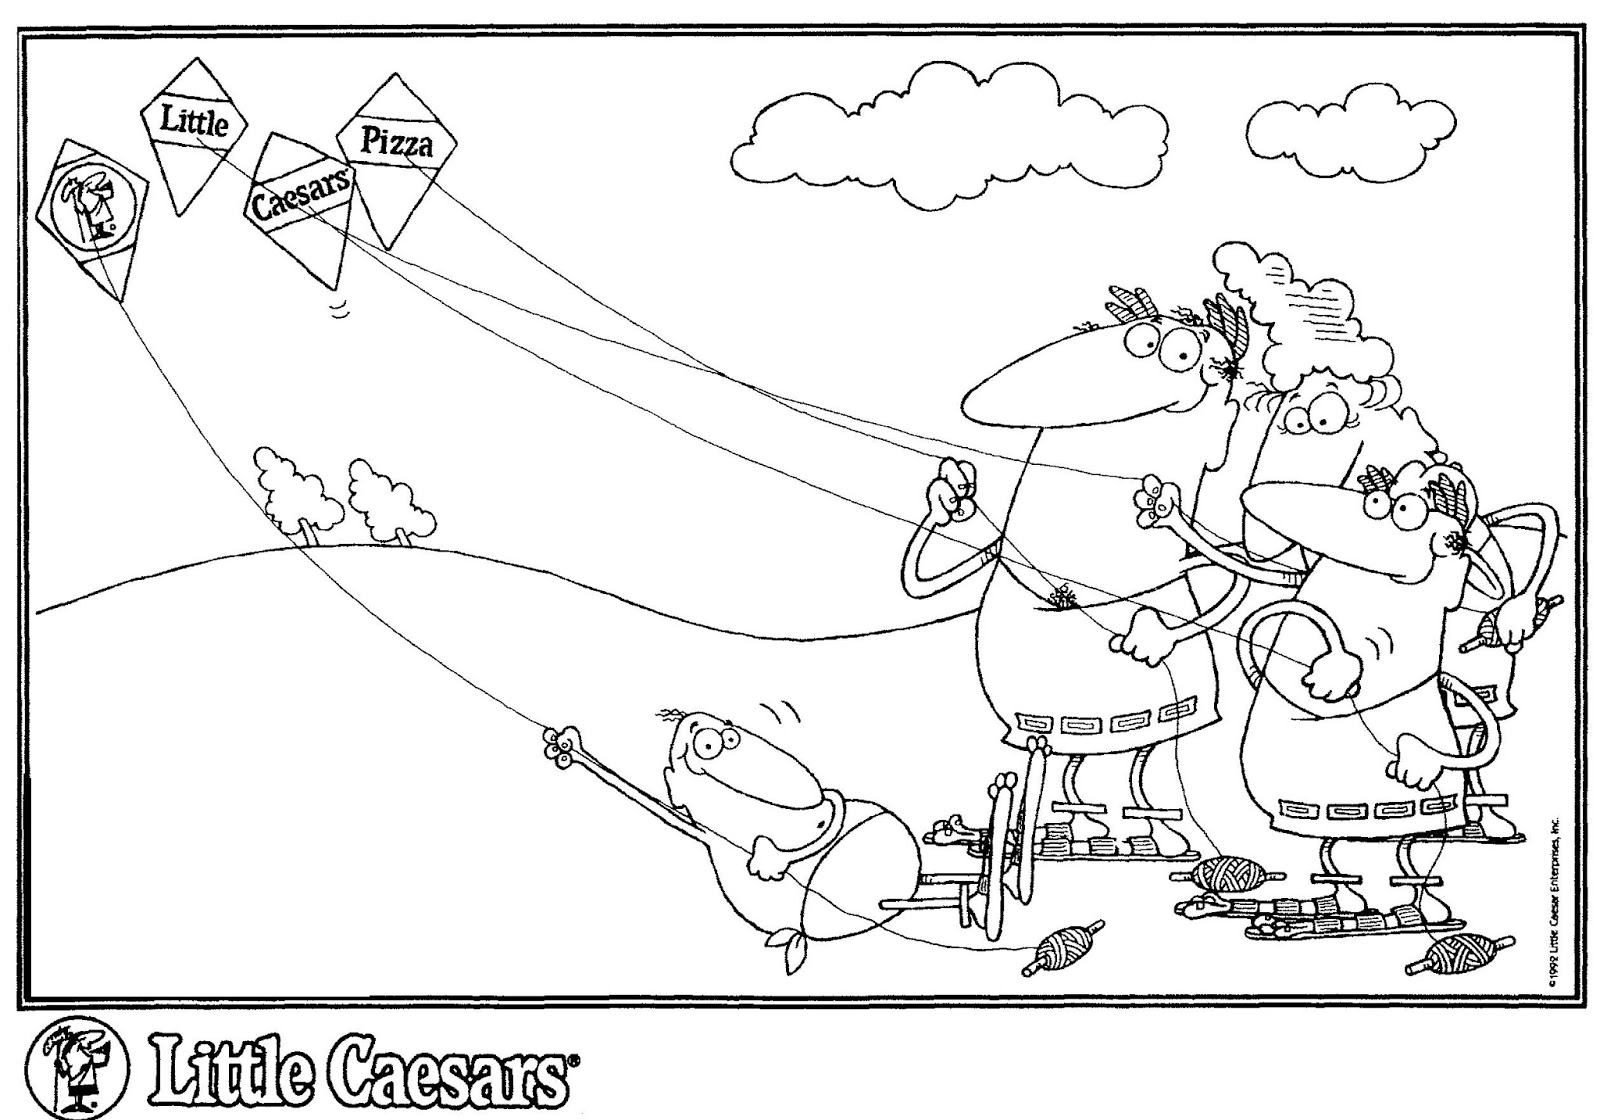 hershey coloring pages for kids - photo#12